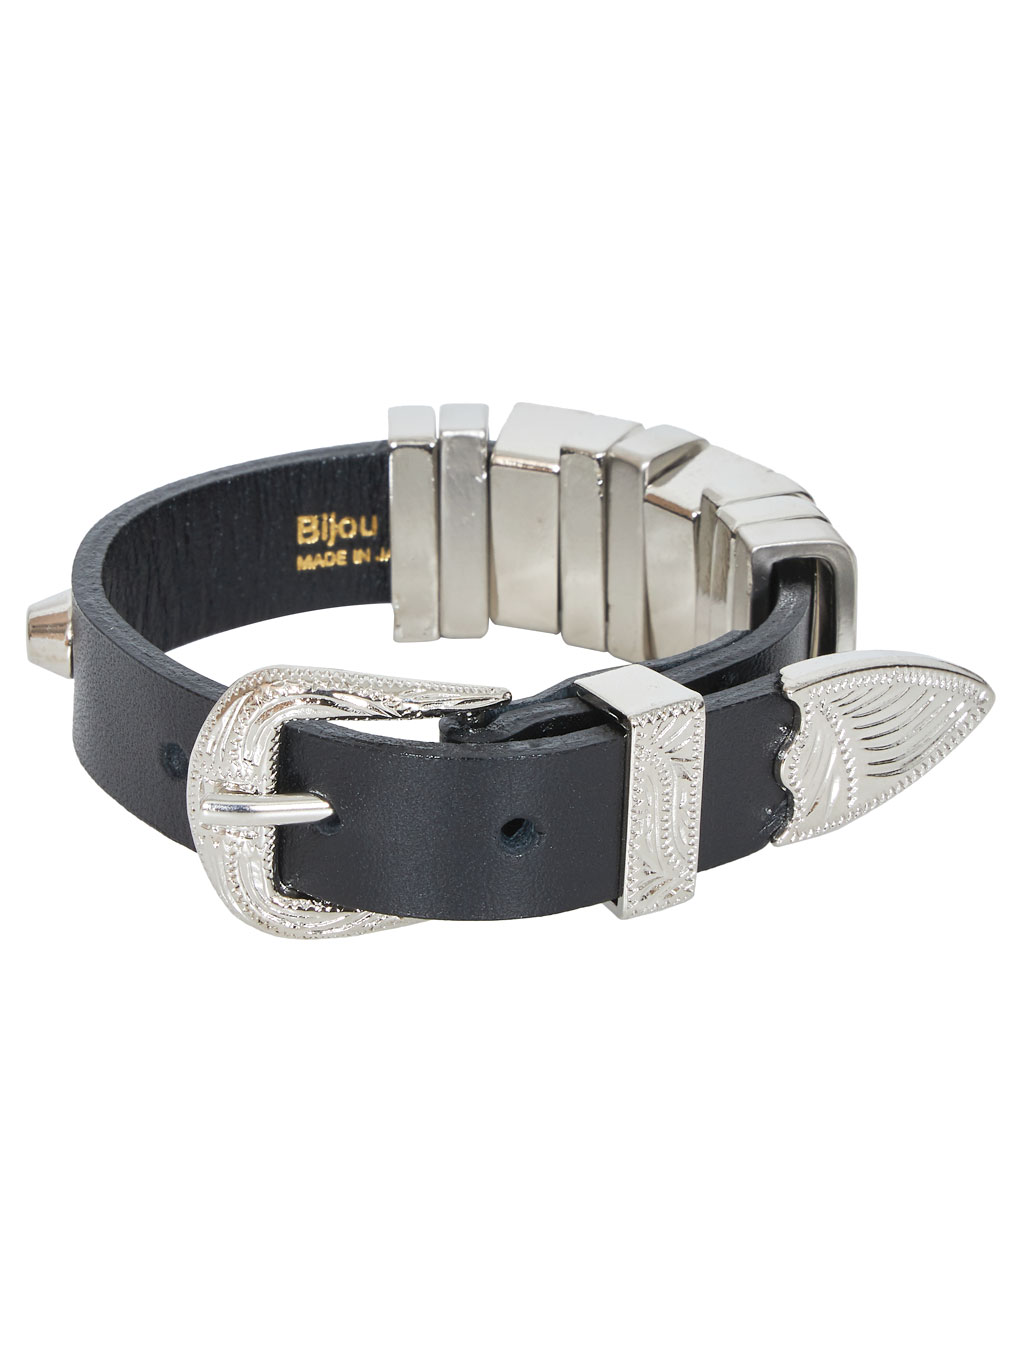 Bijou R.I 15mm Mexico Bar Brace